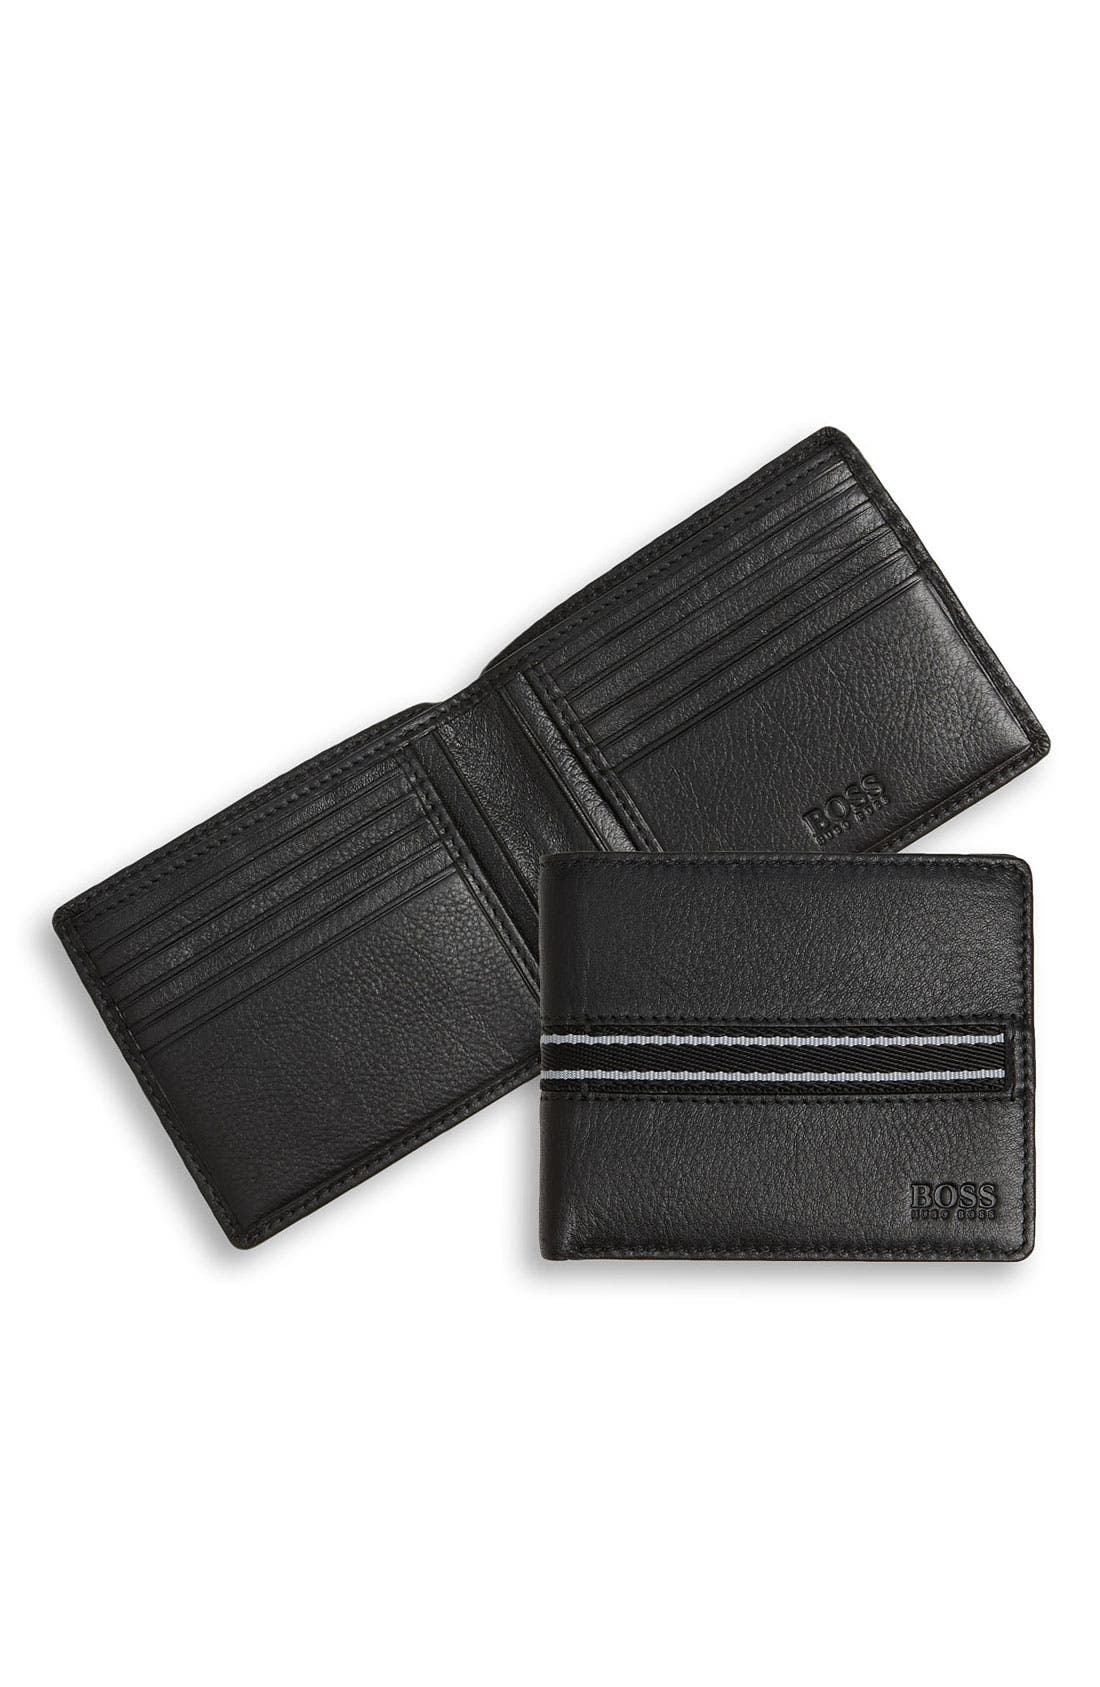 Alternate Image 1 Selected - BOSS HUGO BOSS 'Starskie' Wallet